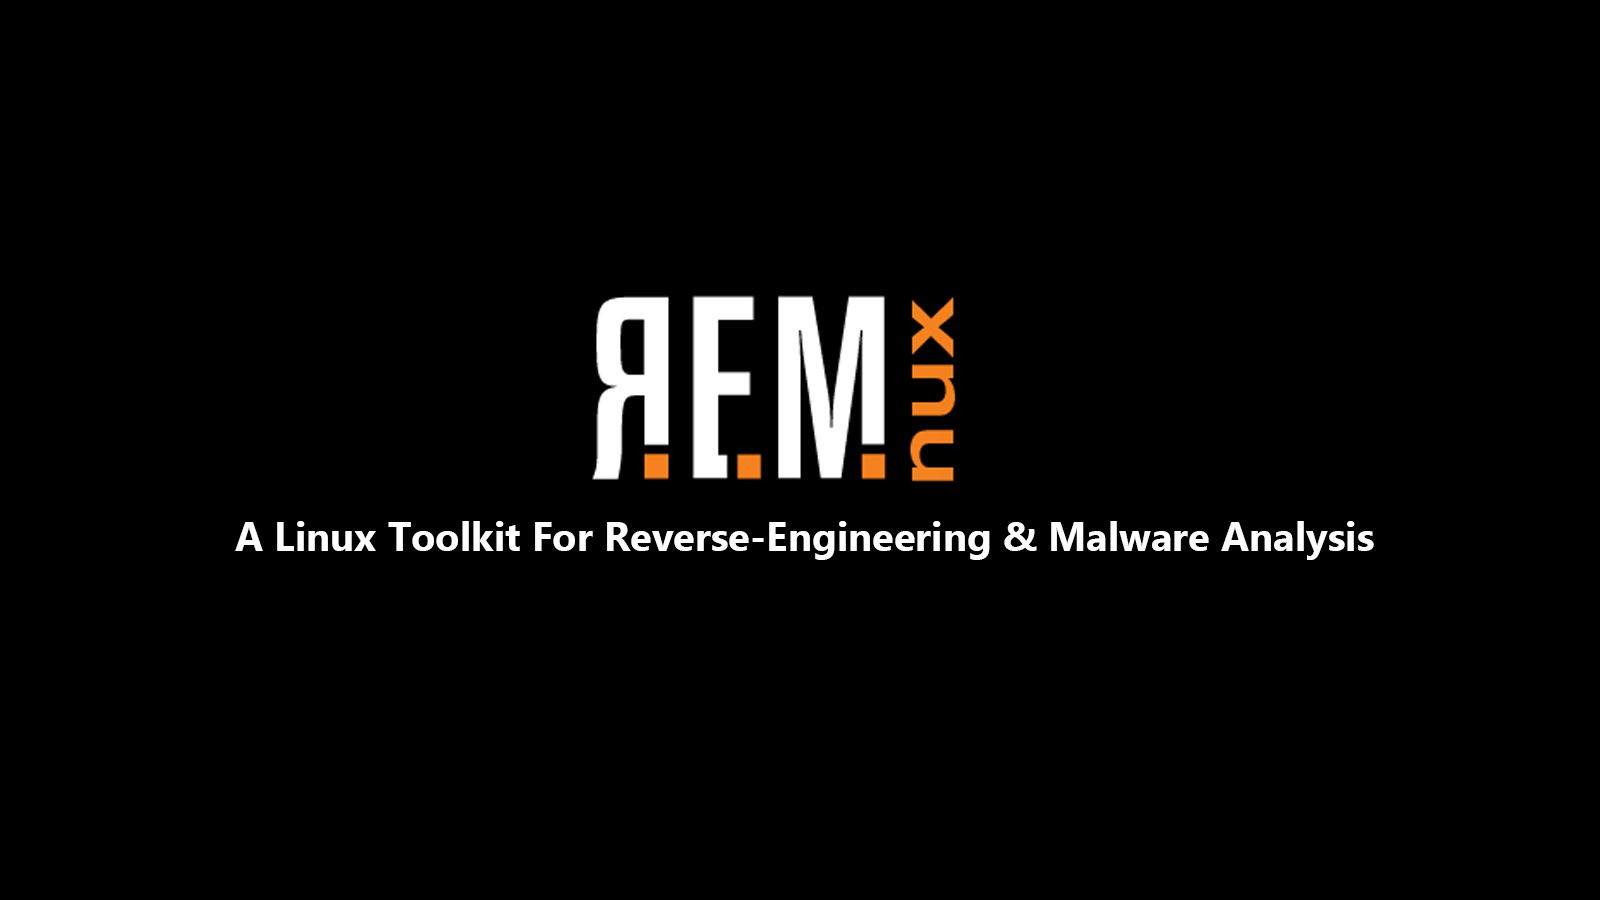 REMnux - A Linux Toolkit For Reverse-Engineering & Malware Analysis